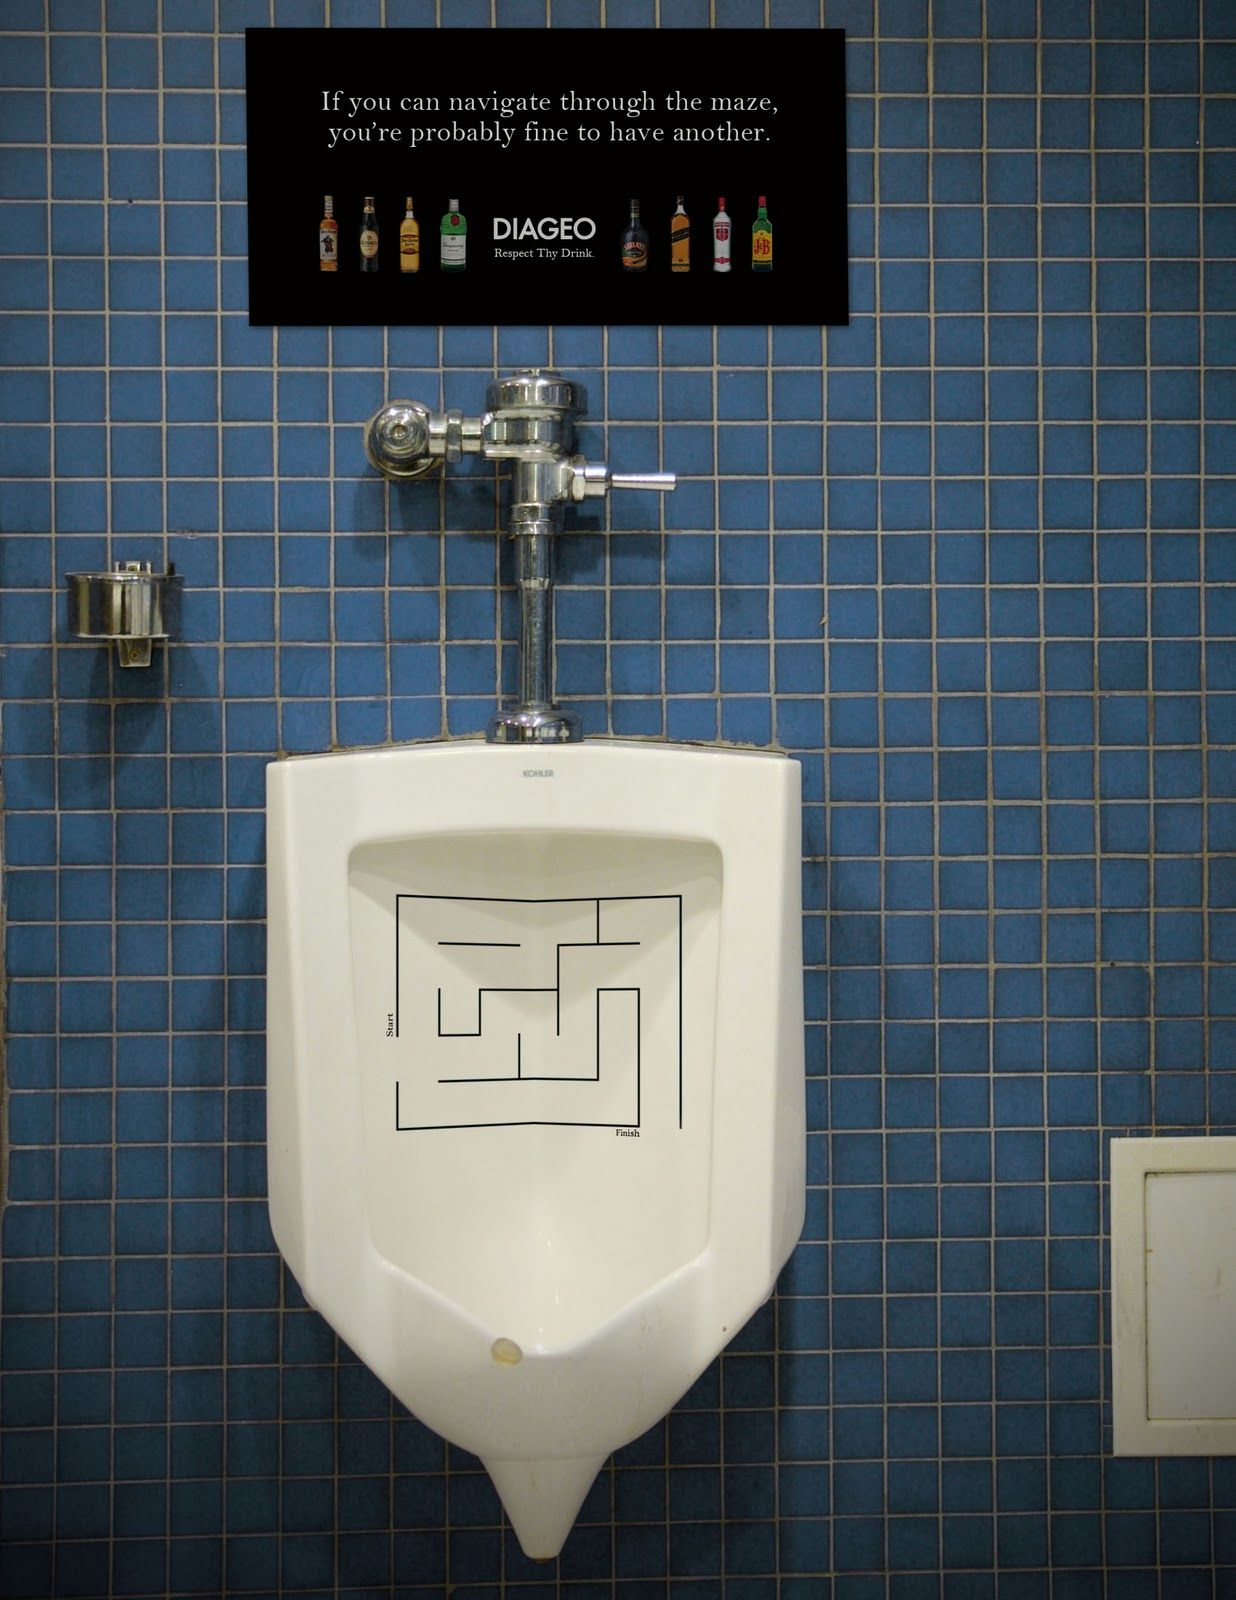 Man Cave With Urinal : Ad in urinal advertising pinterest toilet man